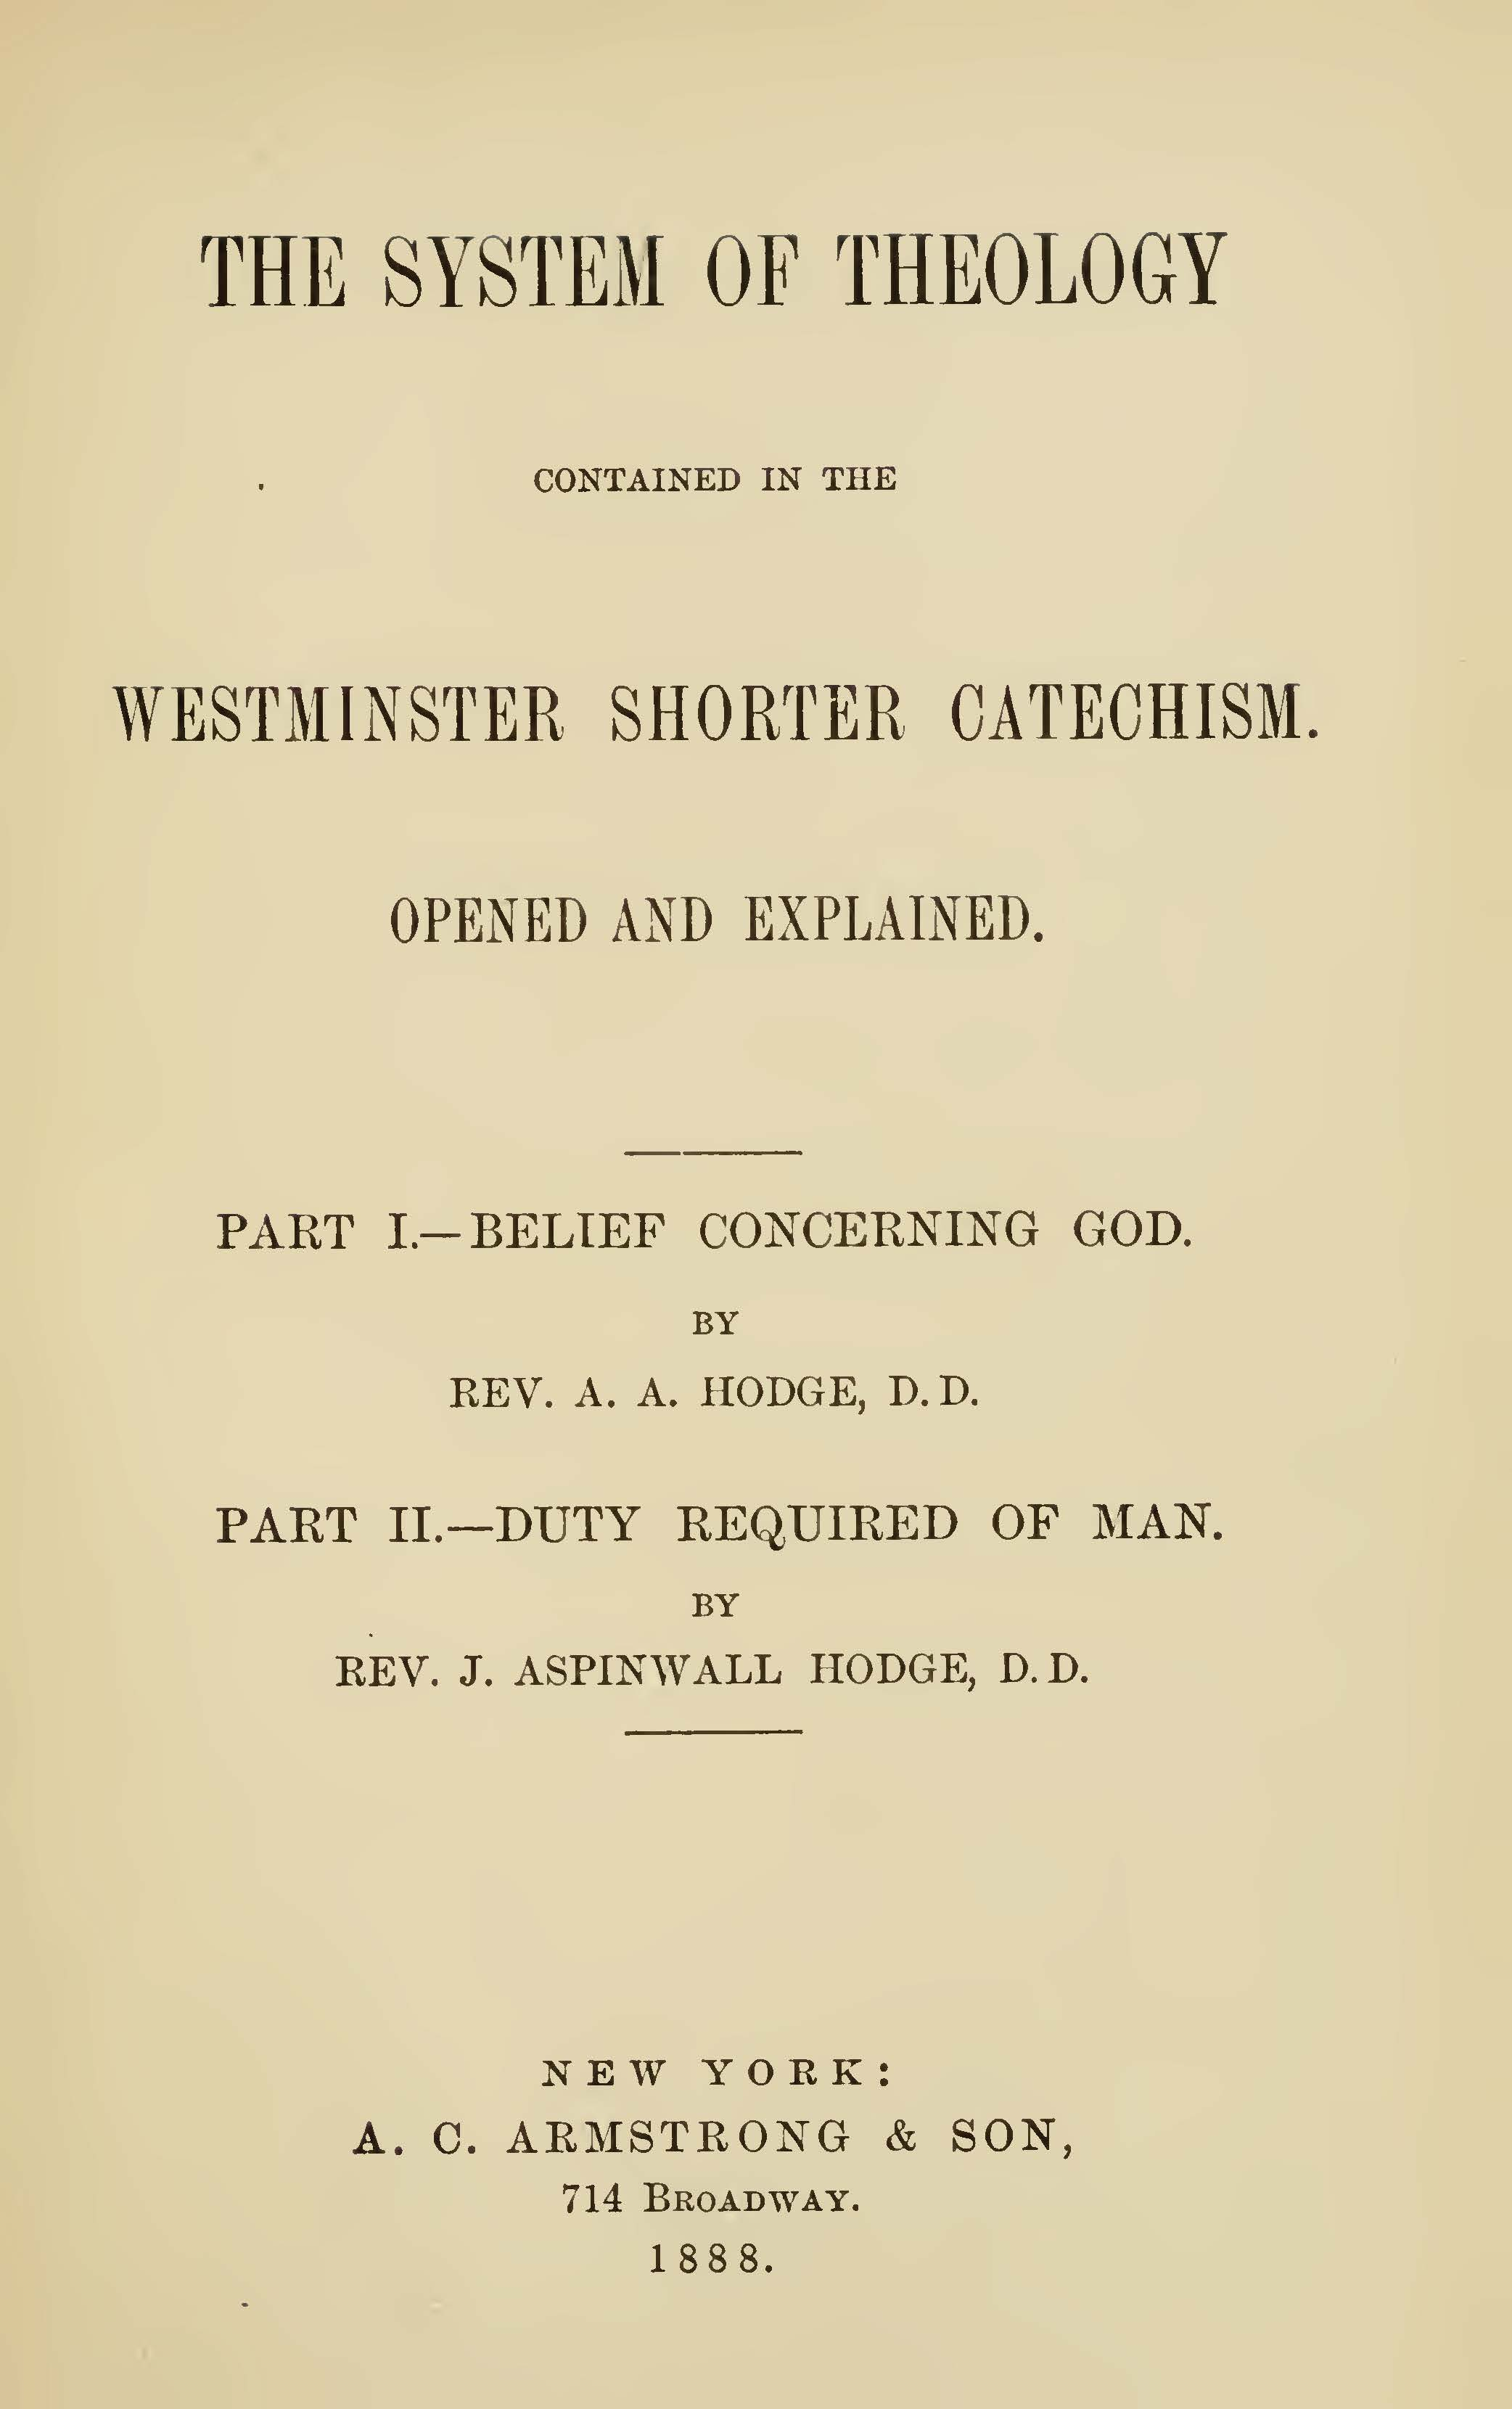 Hodge, A.A., The System of Theology Contained in the Westminster Shorter Catechism Opened and Explained Title Page.jpg